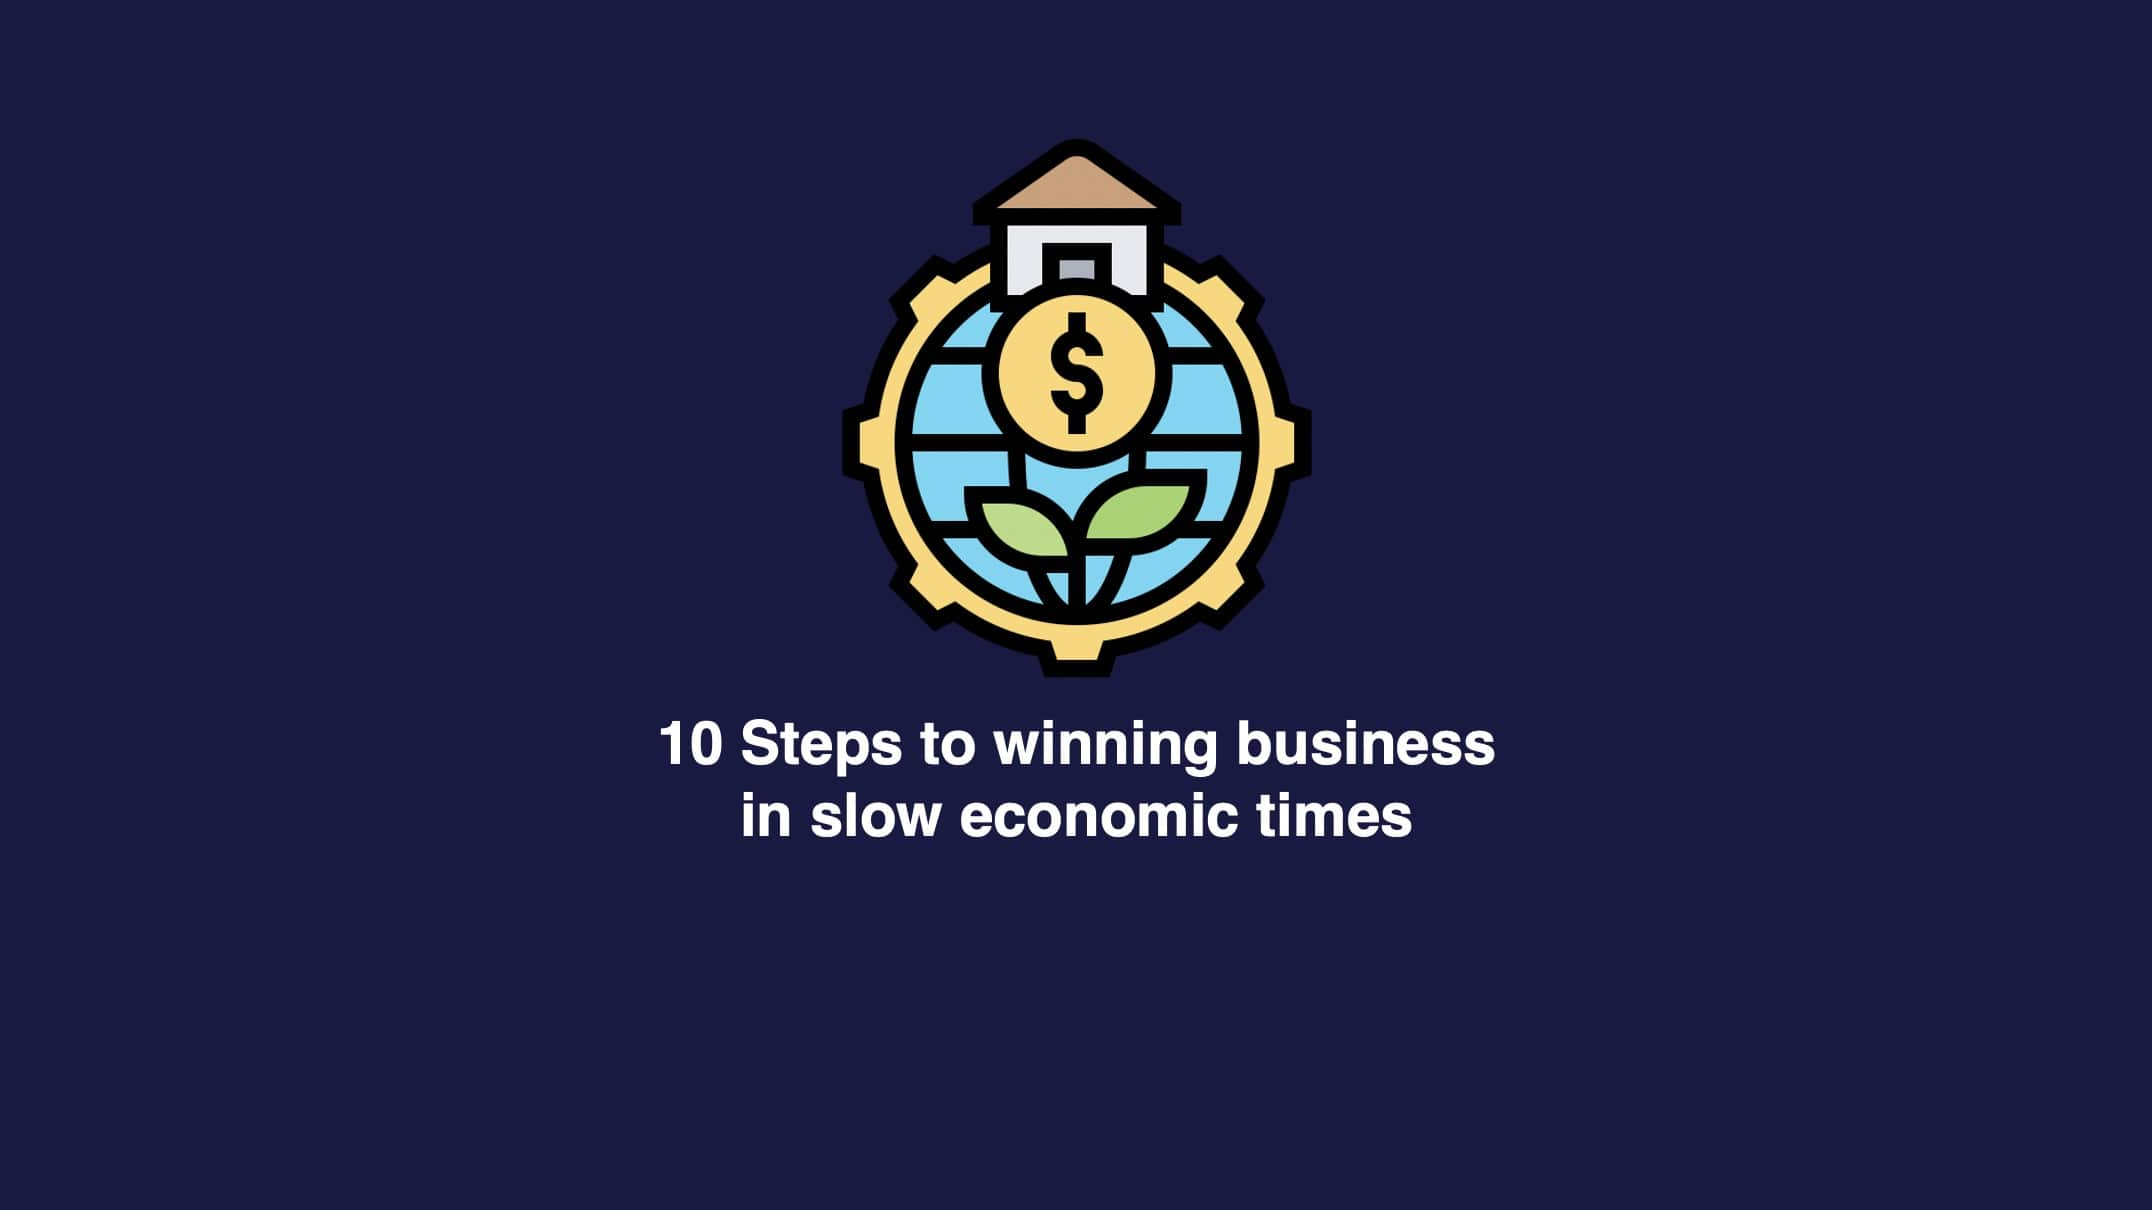 10 Steps To Win Business In Slow Economic Times